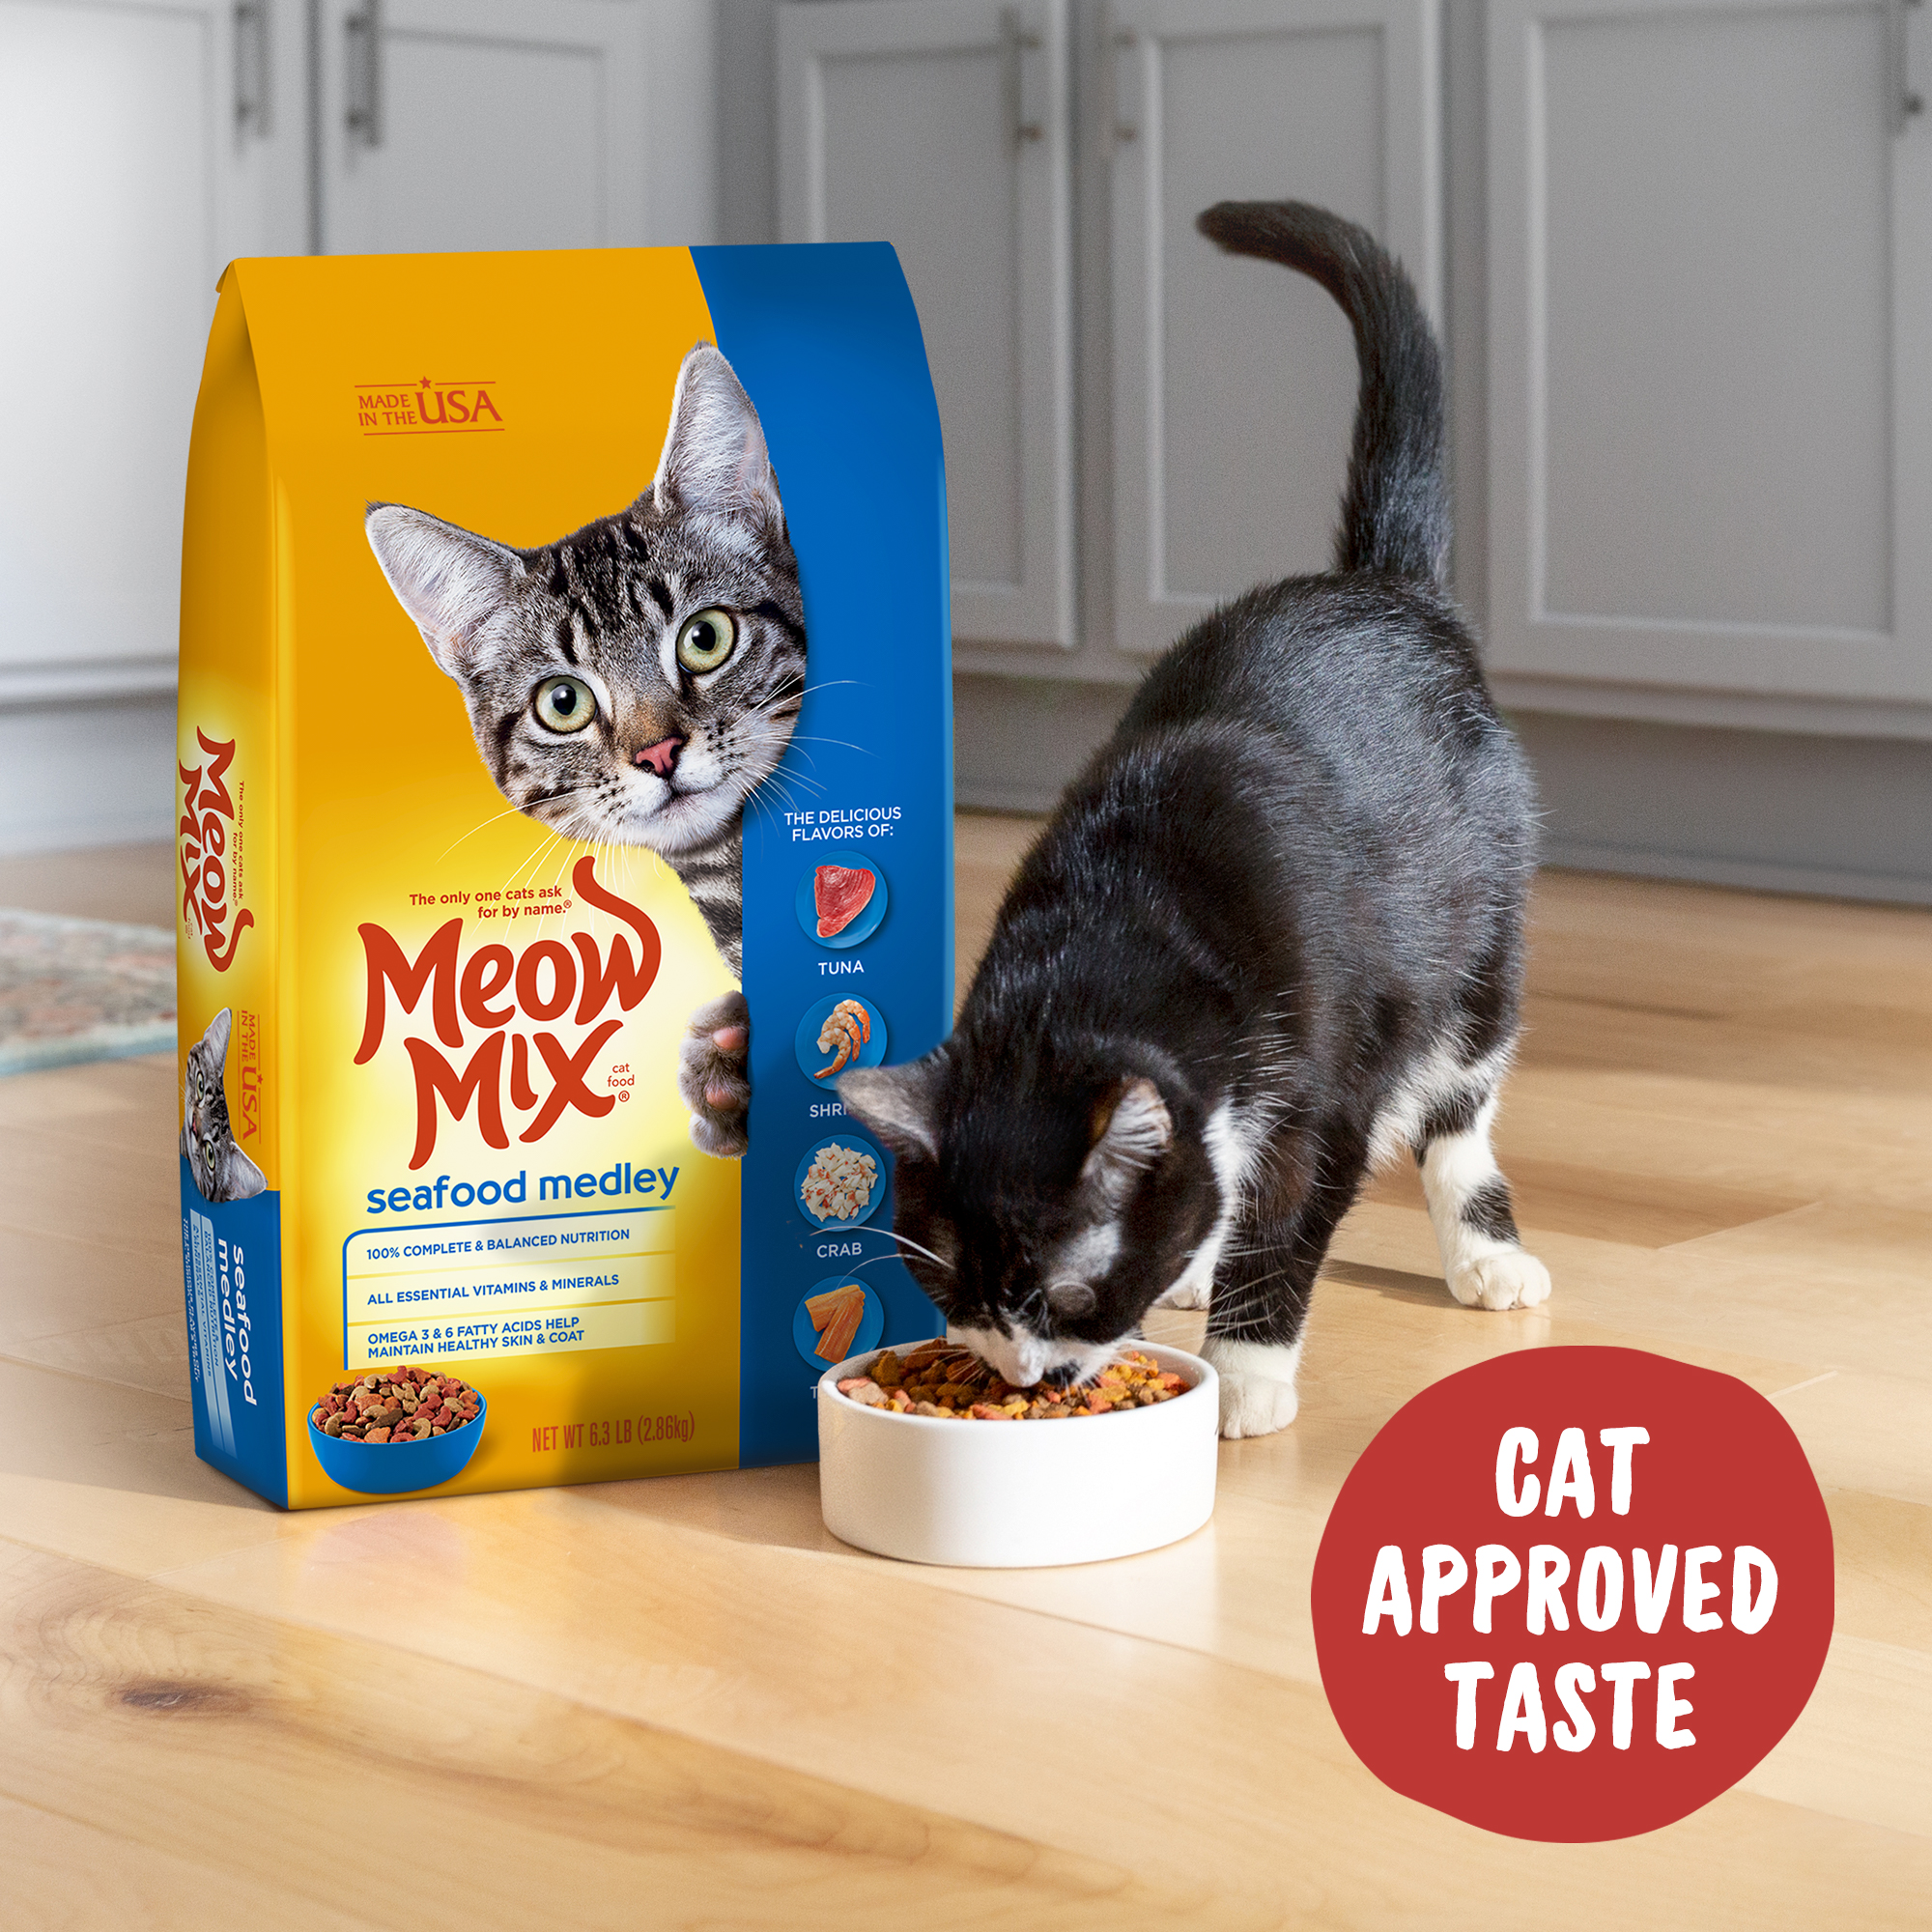 Meow Mix Seafood Medley Dry Cat Food $9.37 (reg $16)